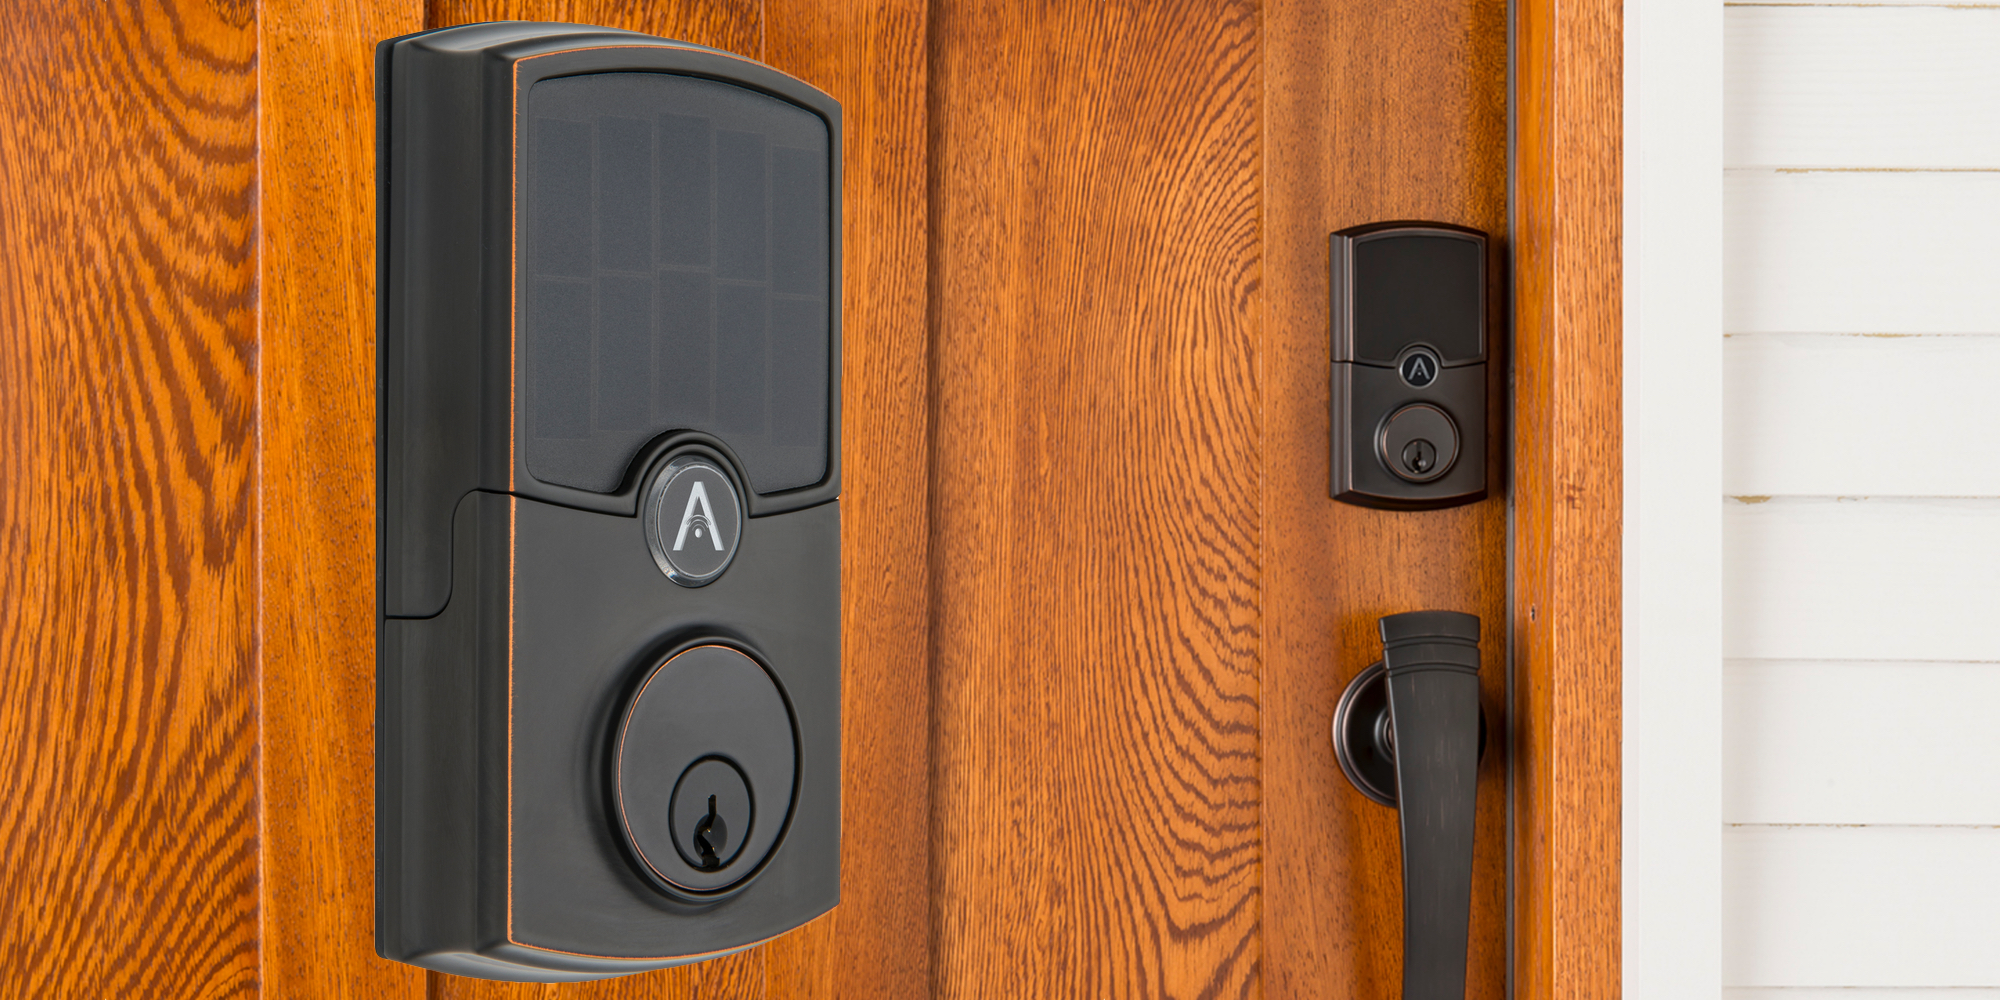 Hampton Debuts Its First Smart Lock Array With Built In